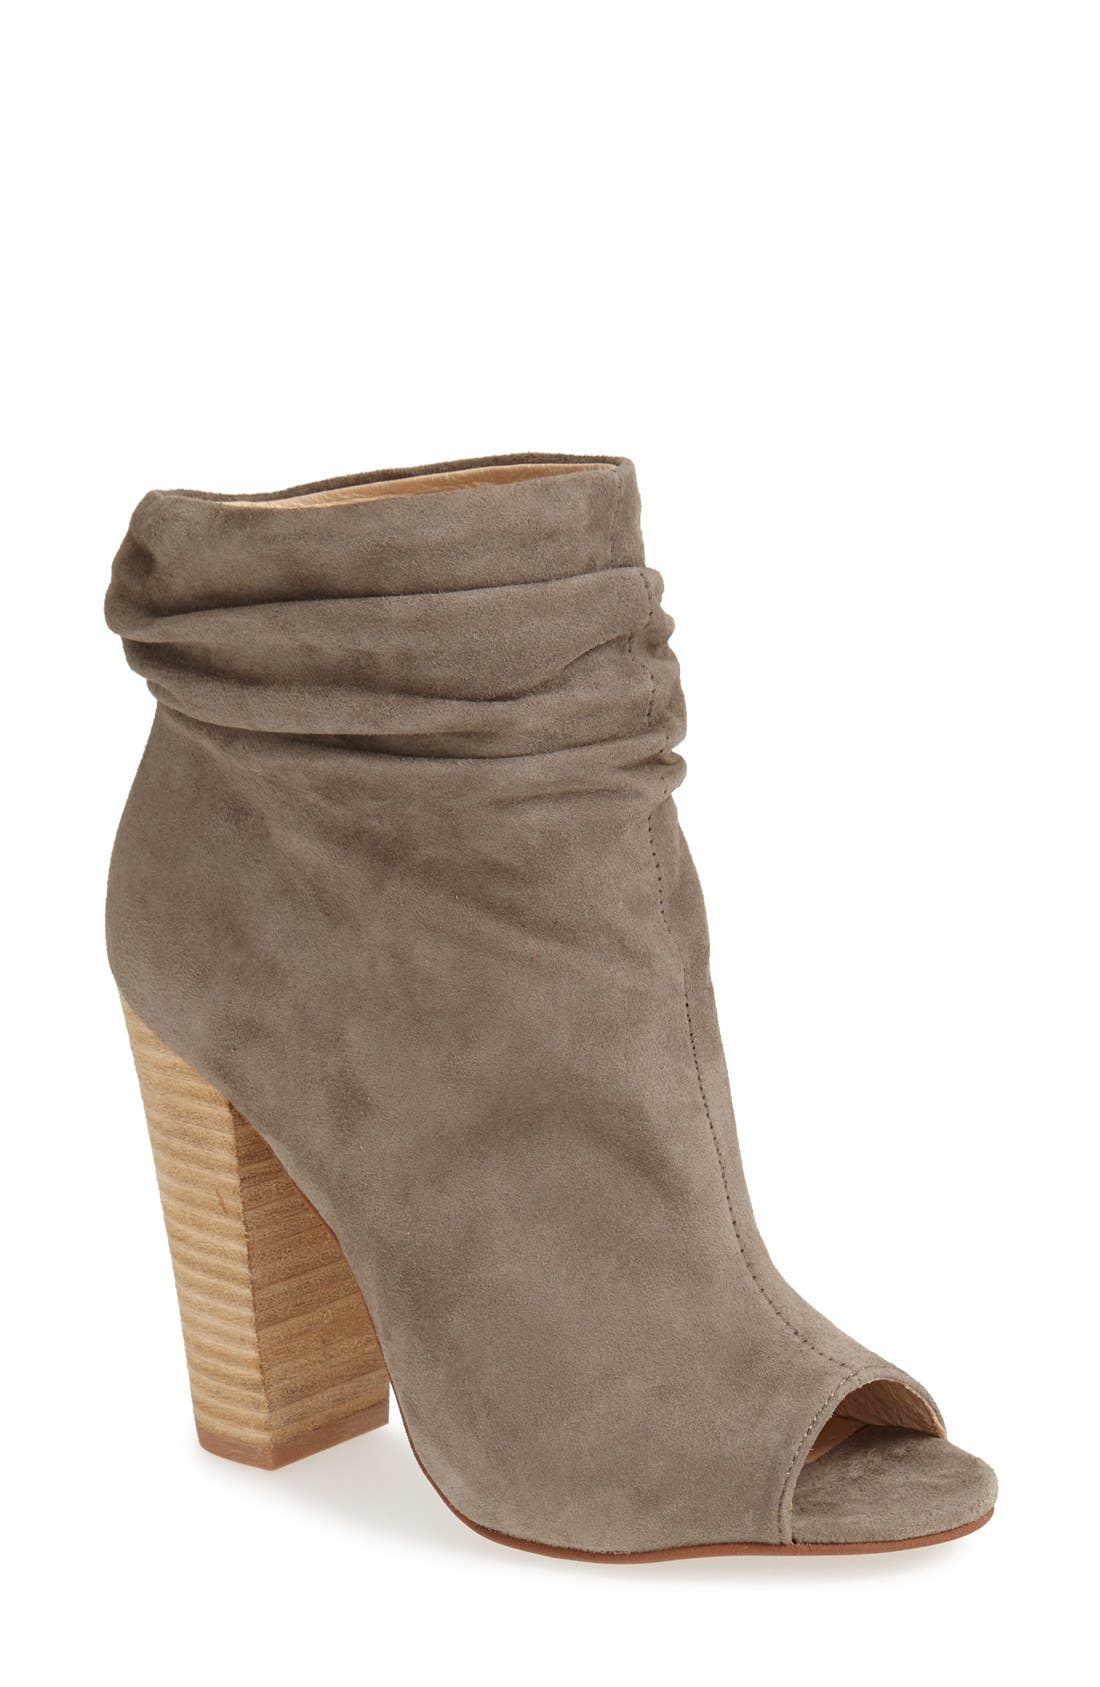 'Laurel' Peep Toe Bootie,                             Main thumbnail 3, color,